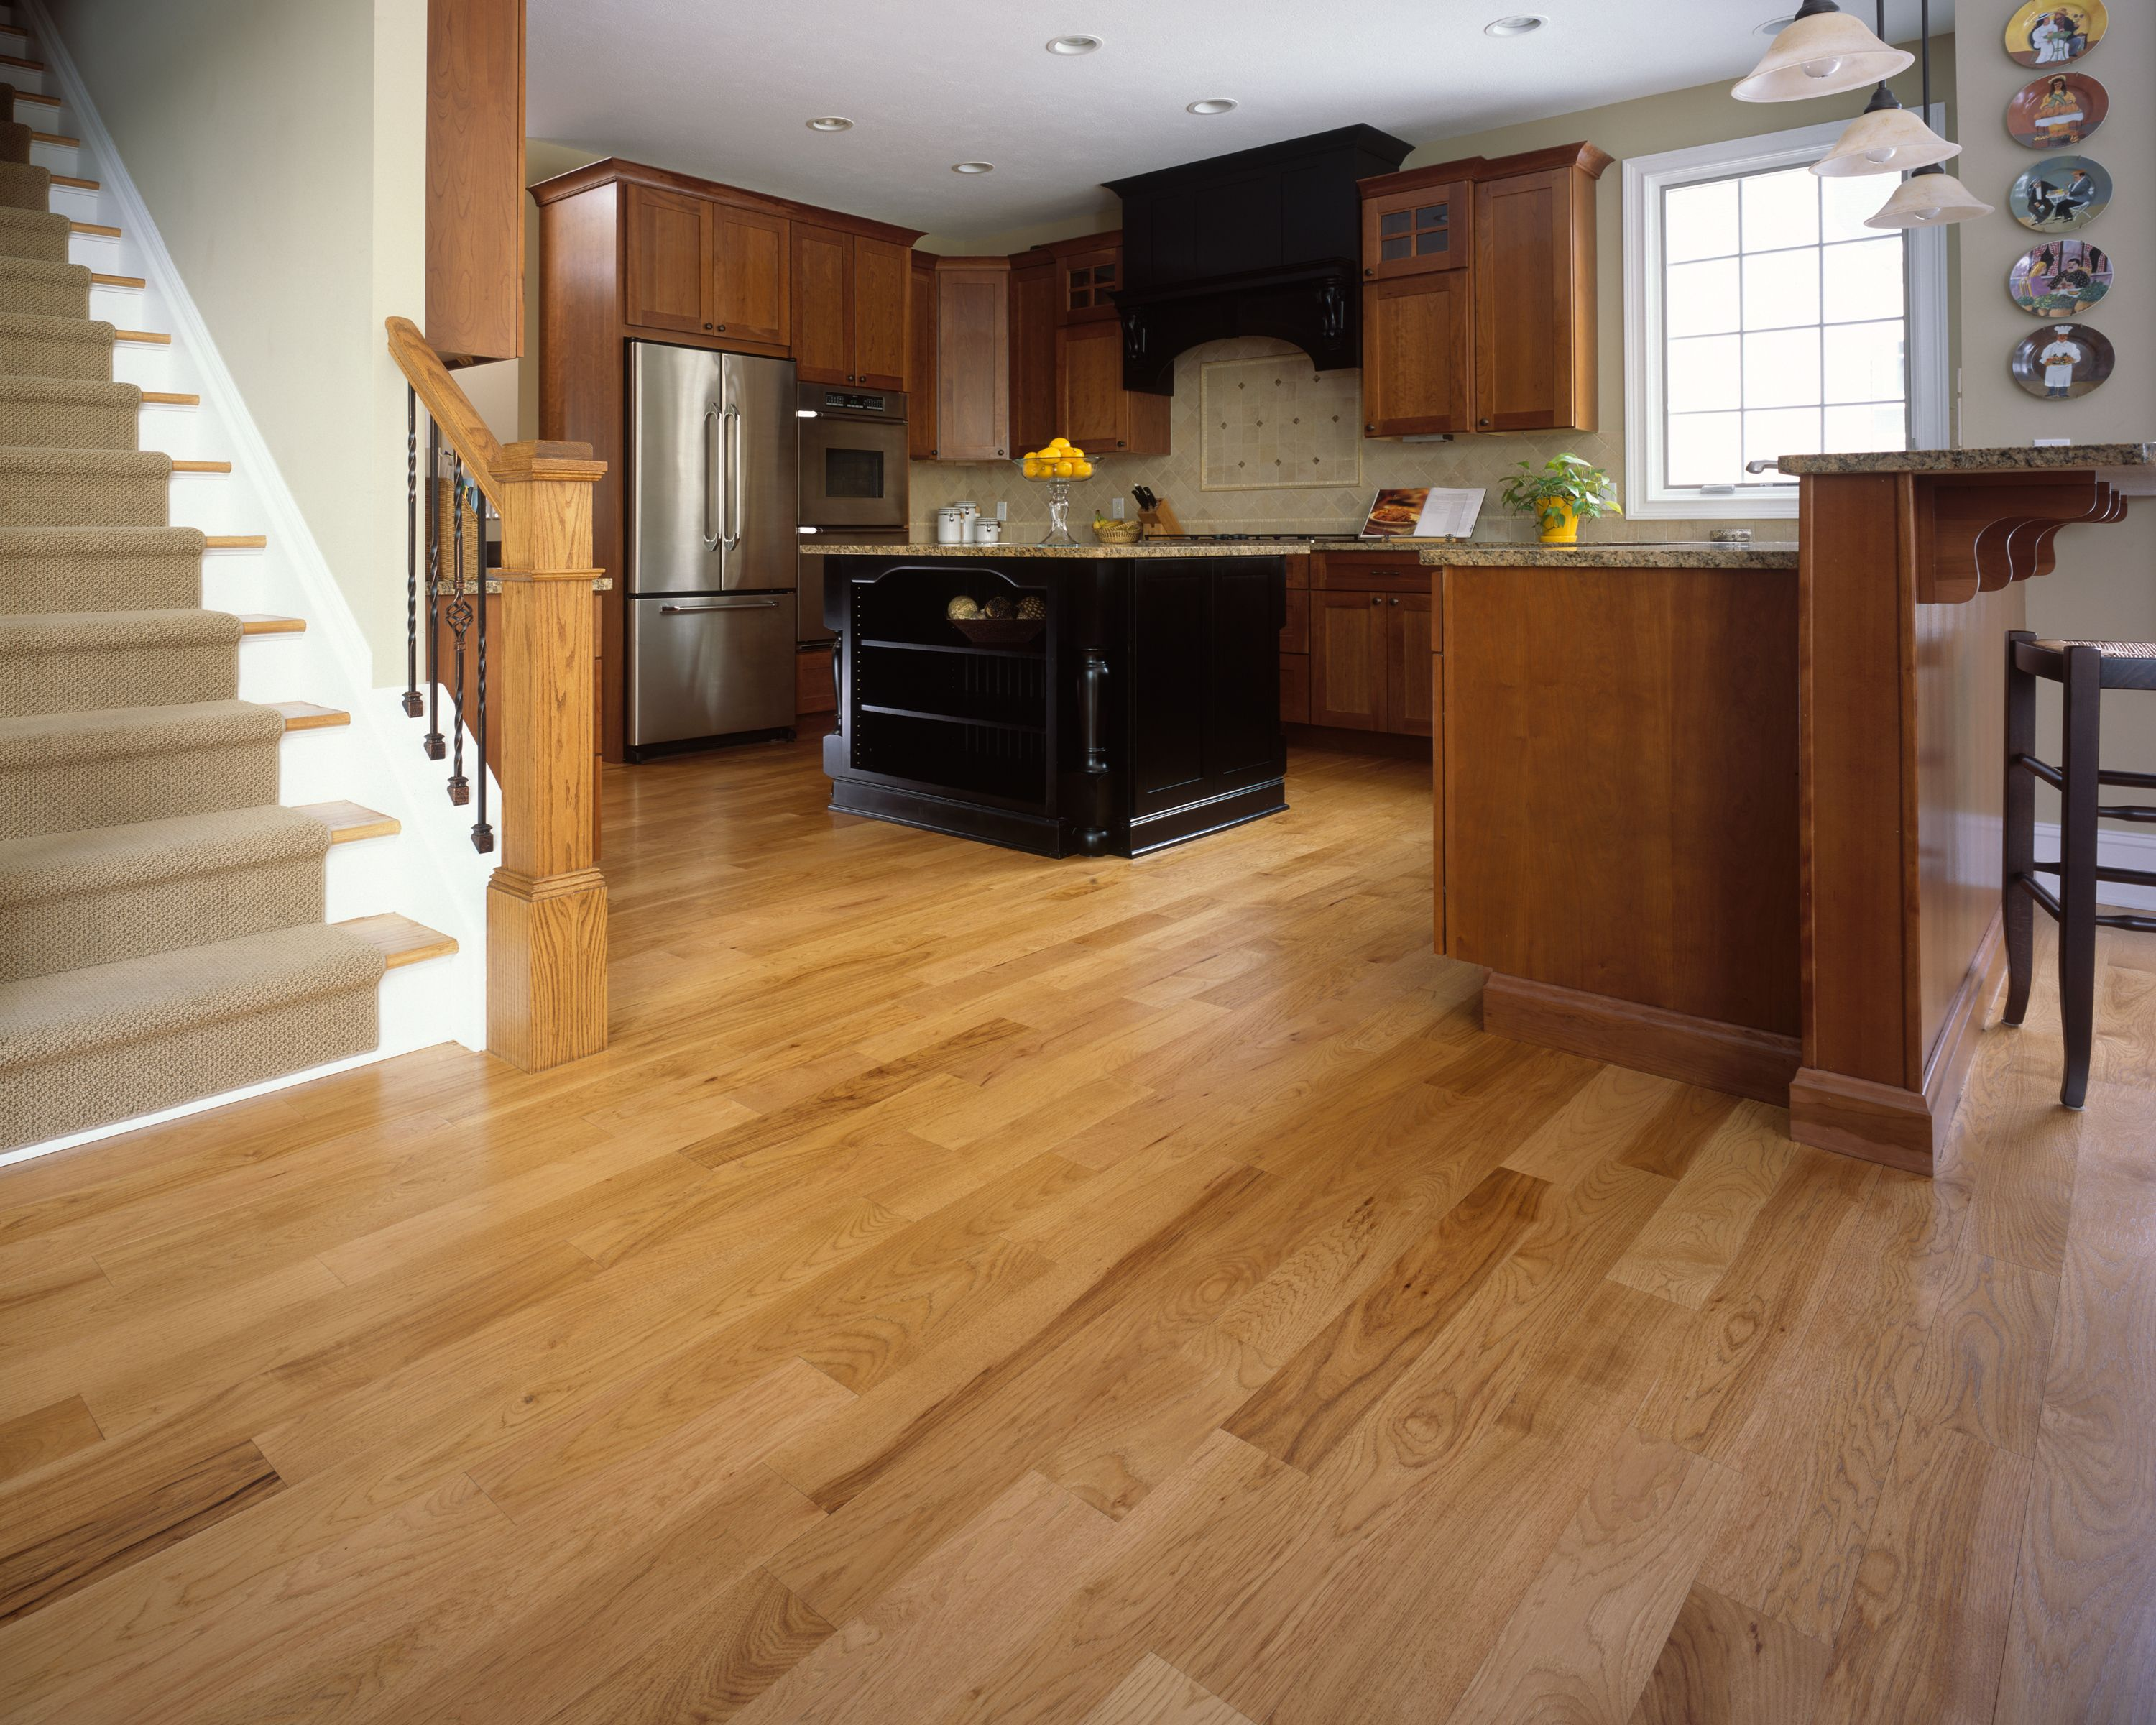 Walnut wood floors in kitchen wood floors for kitchen for Kitchen flooring advice